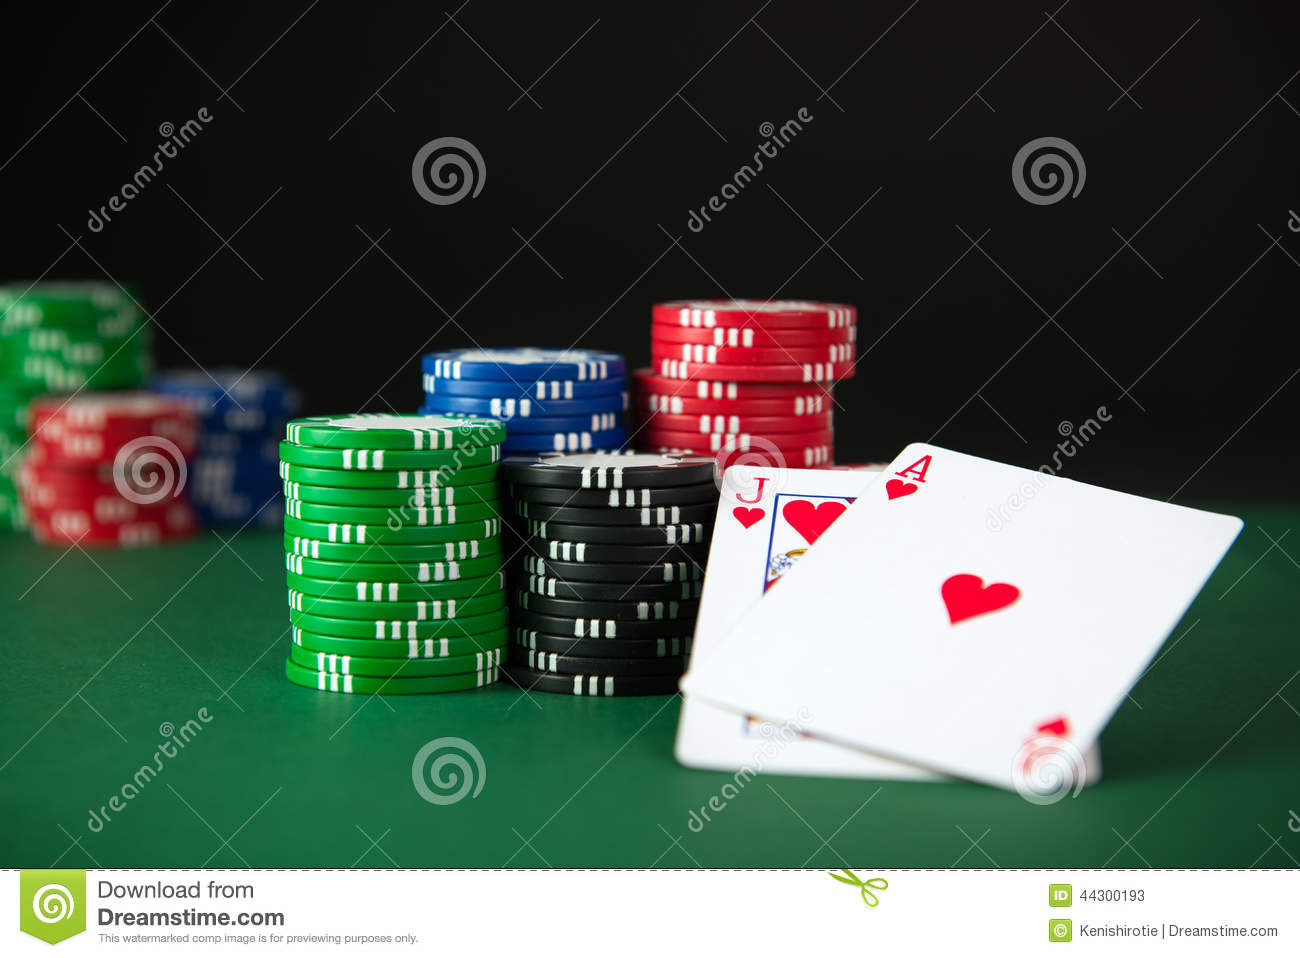 Top 3 Real Money Online Blackjack Casinos